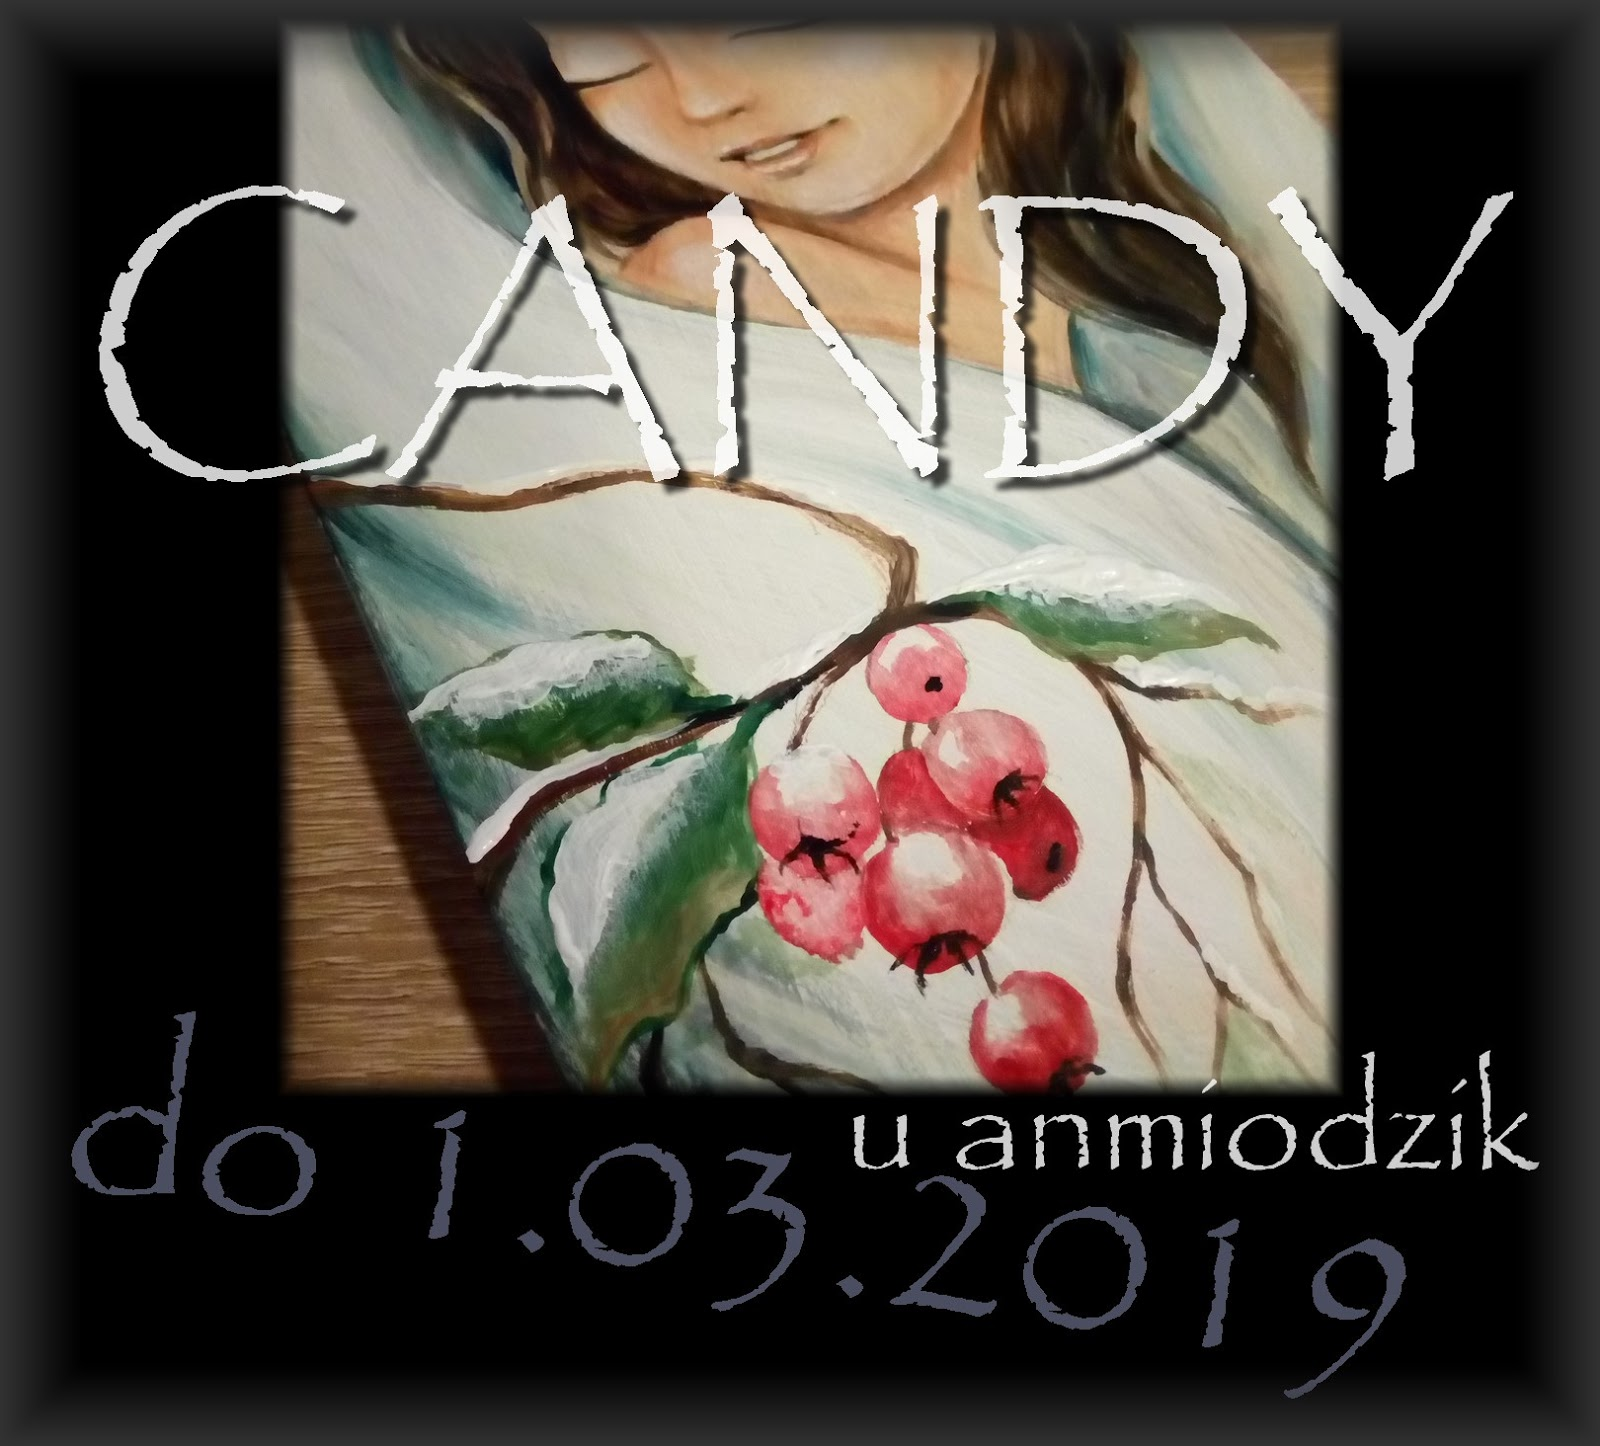 Candy do 1.03